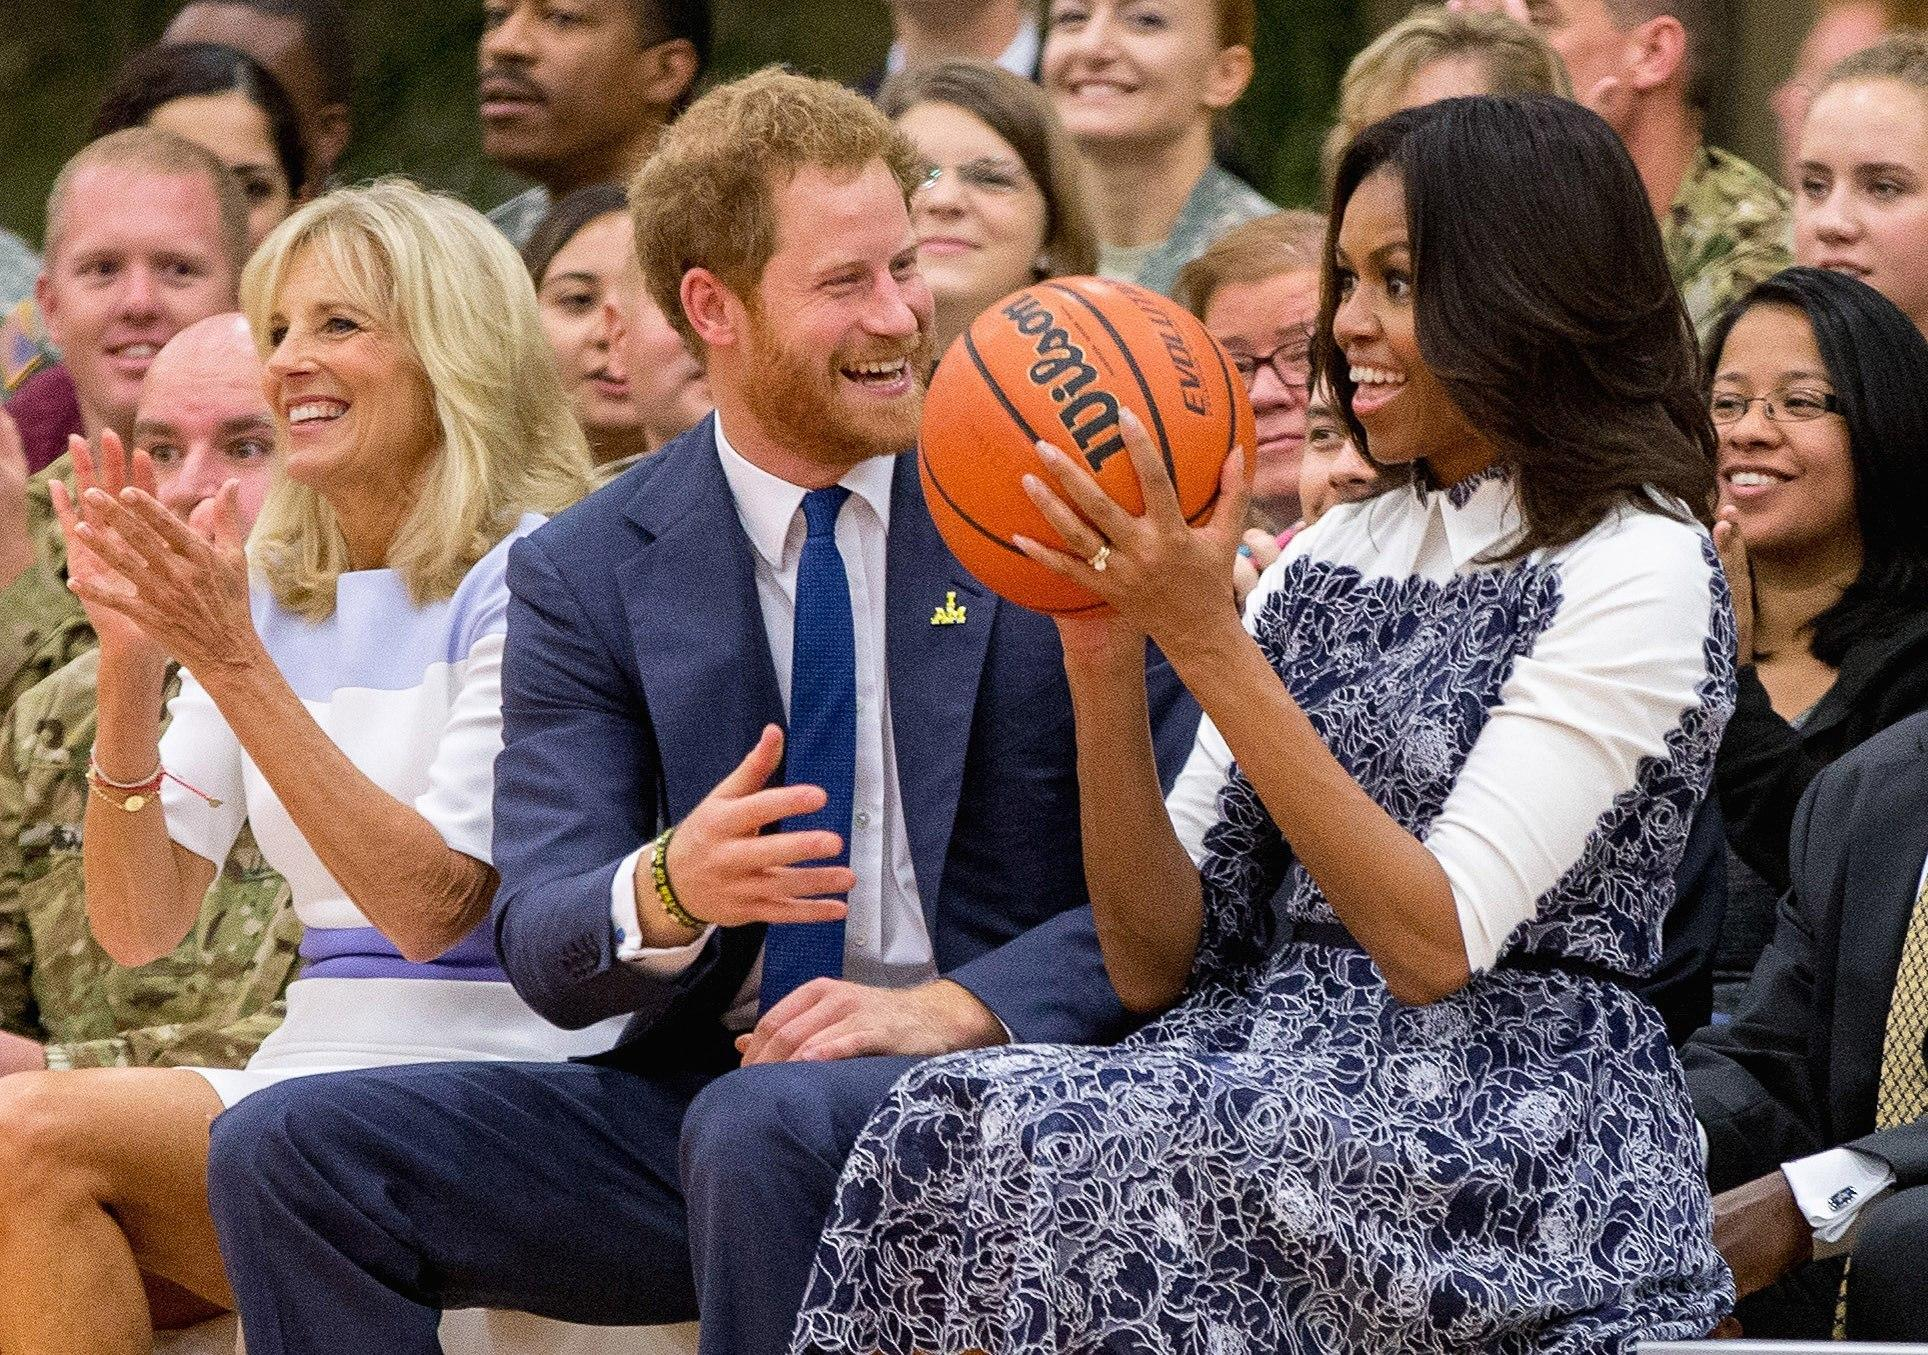 Jill Biden, left, Prince Harry and then-First Lady Michelle Obama in 2015. (Andrew Harnik / Associated Press)